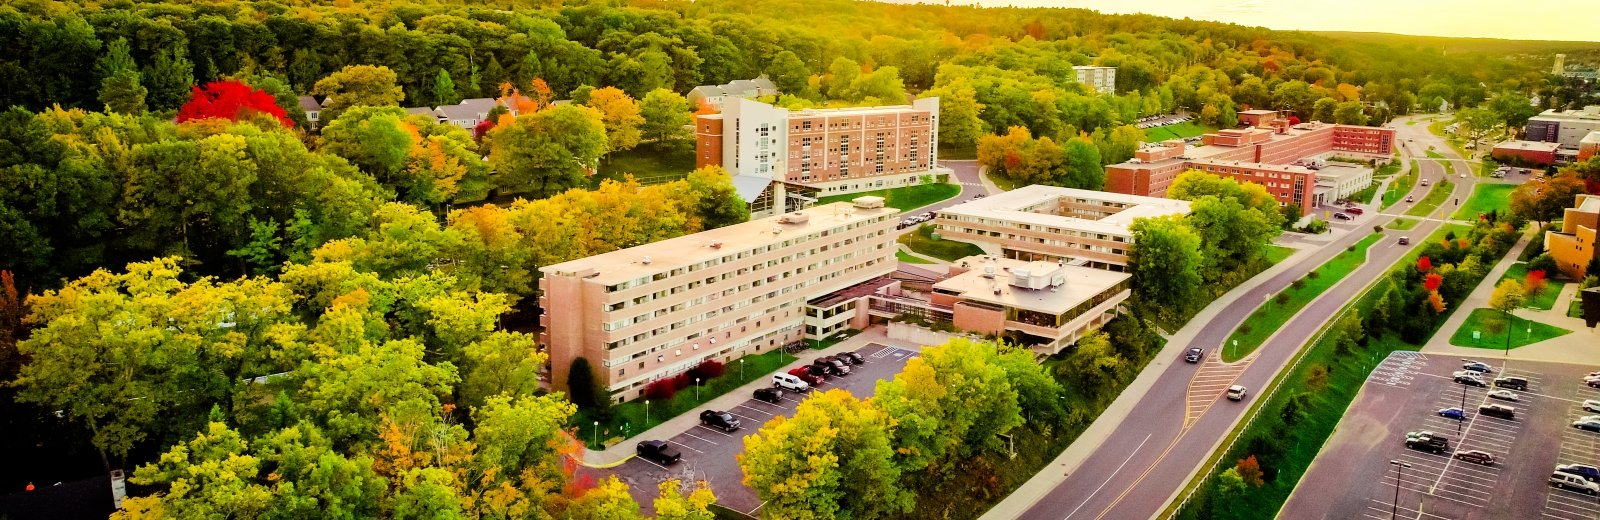 aerial view of Michigan Tech campus